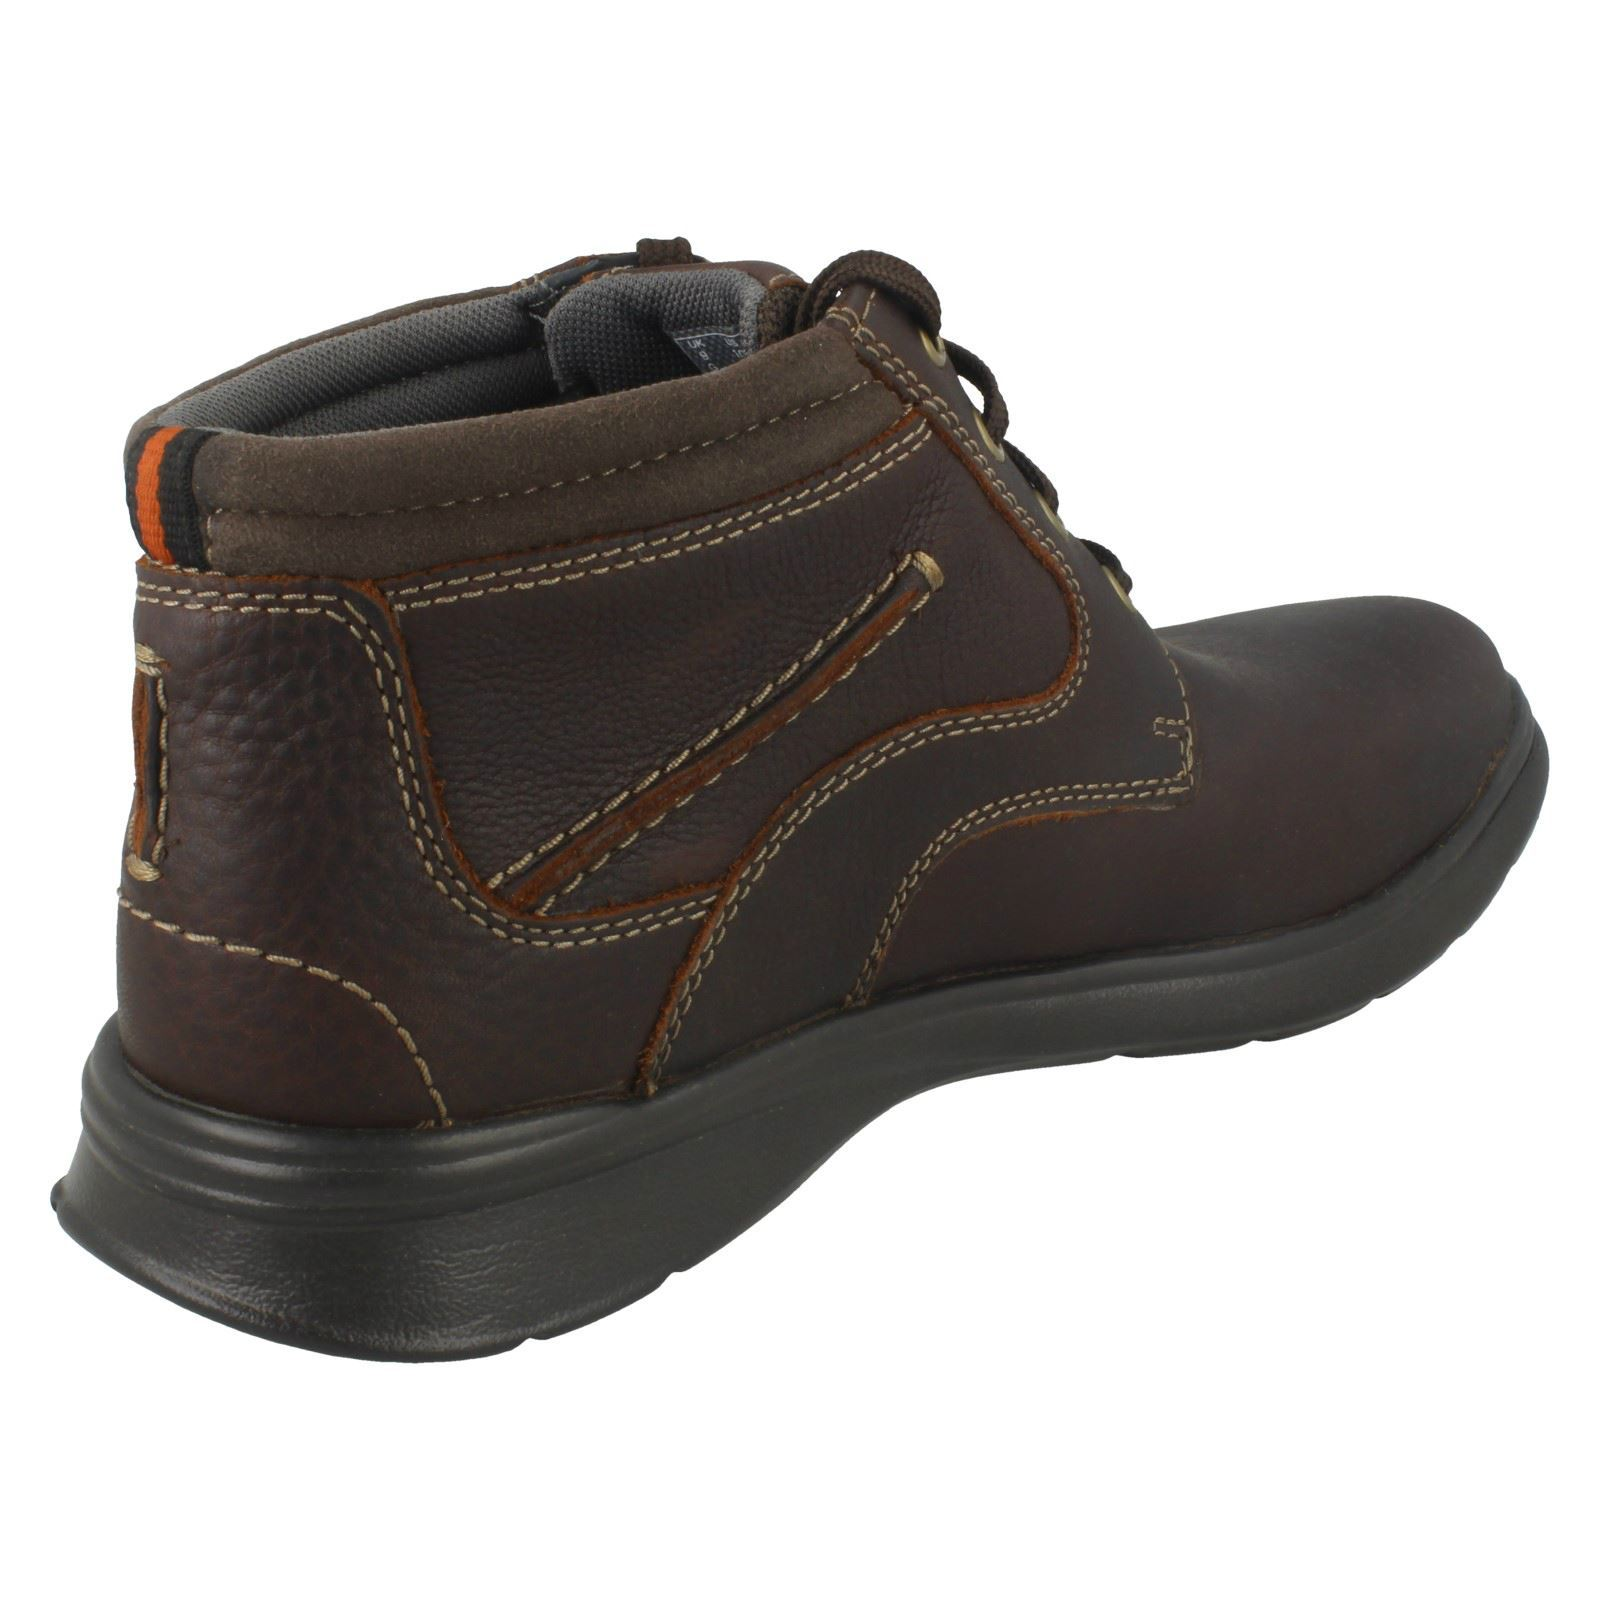 Mens-Clarks-Cotrell-Rise-Casual-Lace-Up-Ankle-Boots thumbnail 15